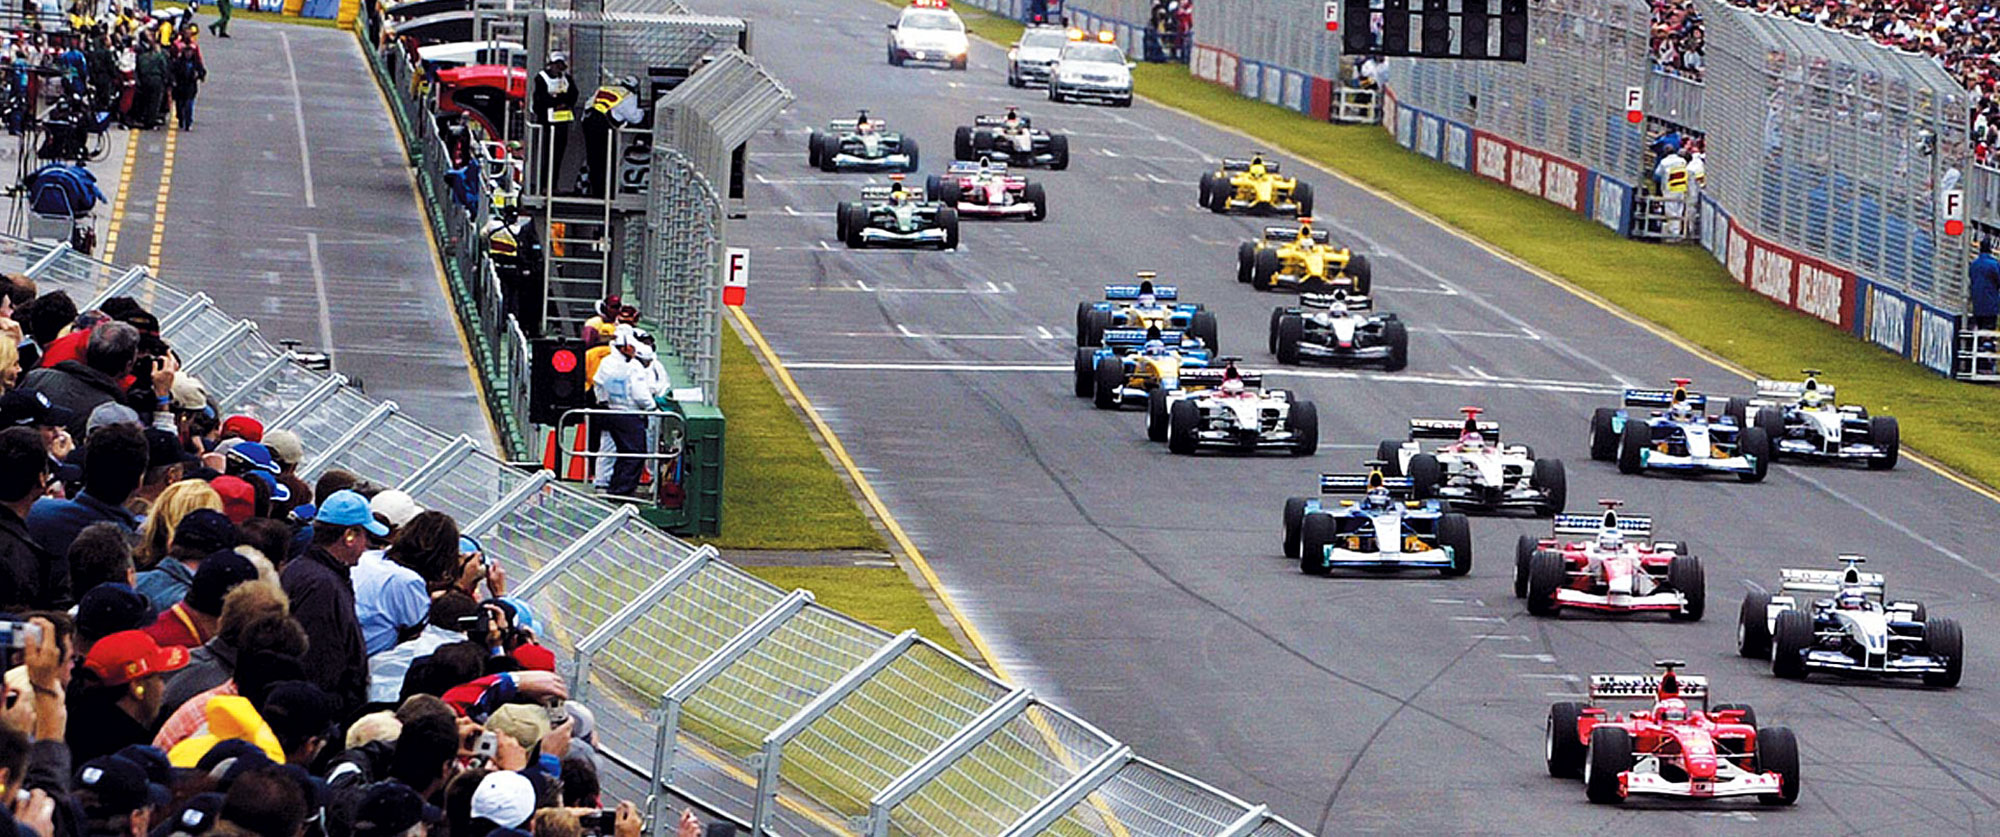 Australia Travel Specialist - Melbourne Grand Prix - Australia Travel Package - Travel Packages